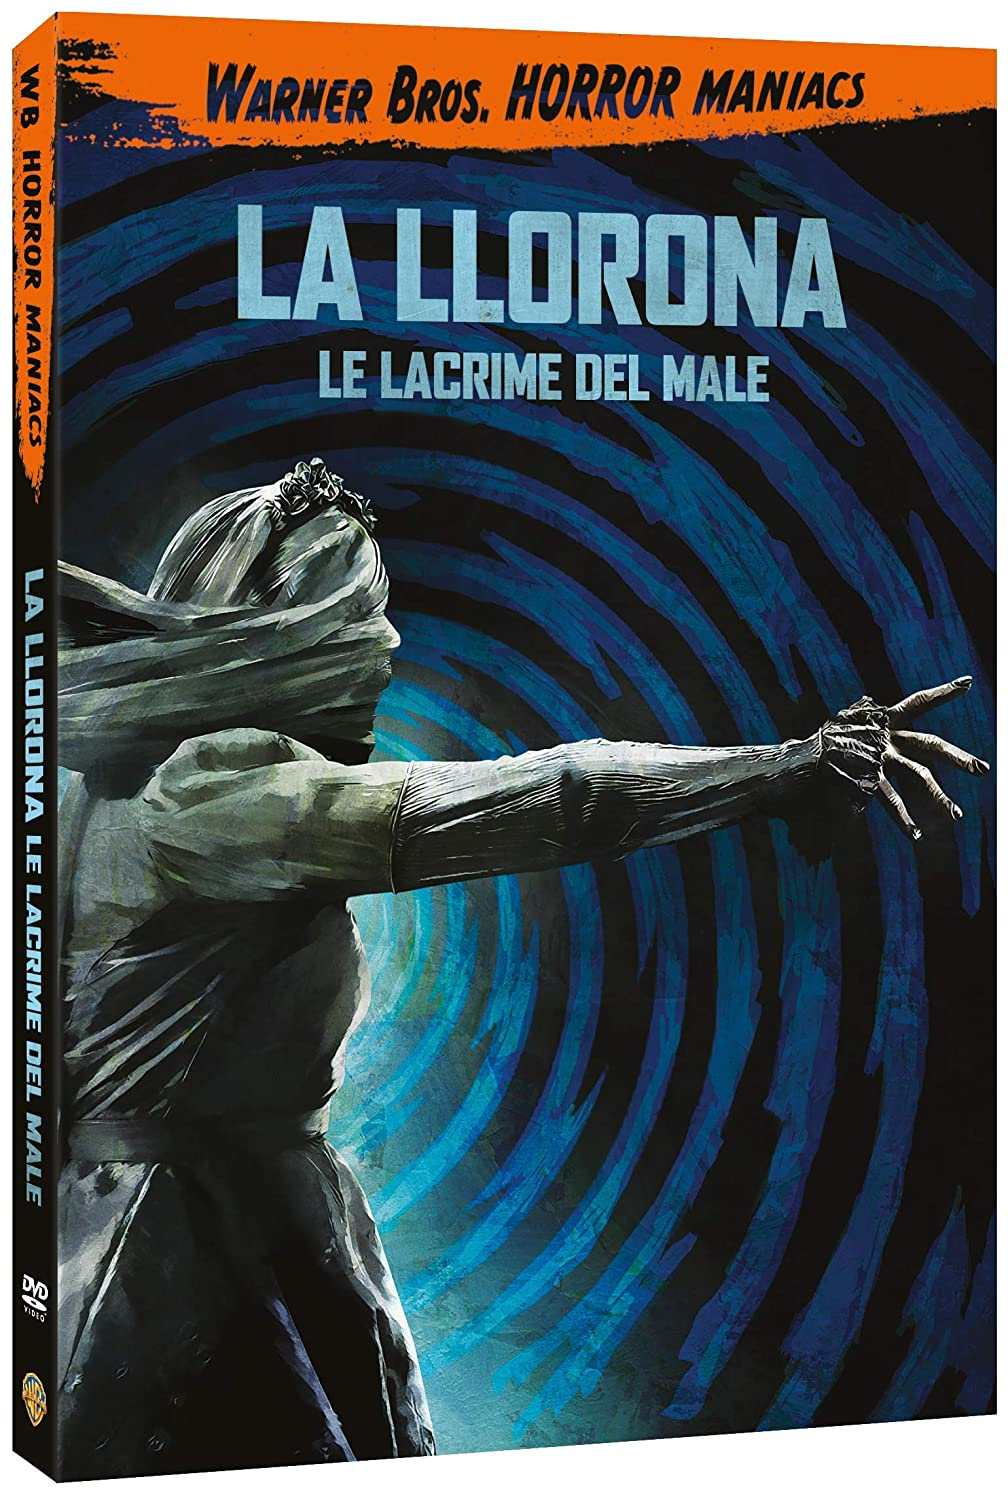 LA LLORONA - LE LACRIME DEL MALE (HORROR MANIACS COLLECTION) (D